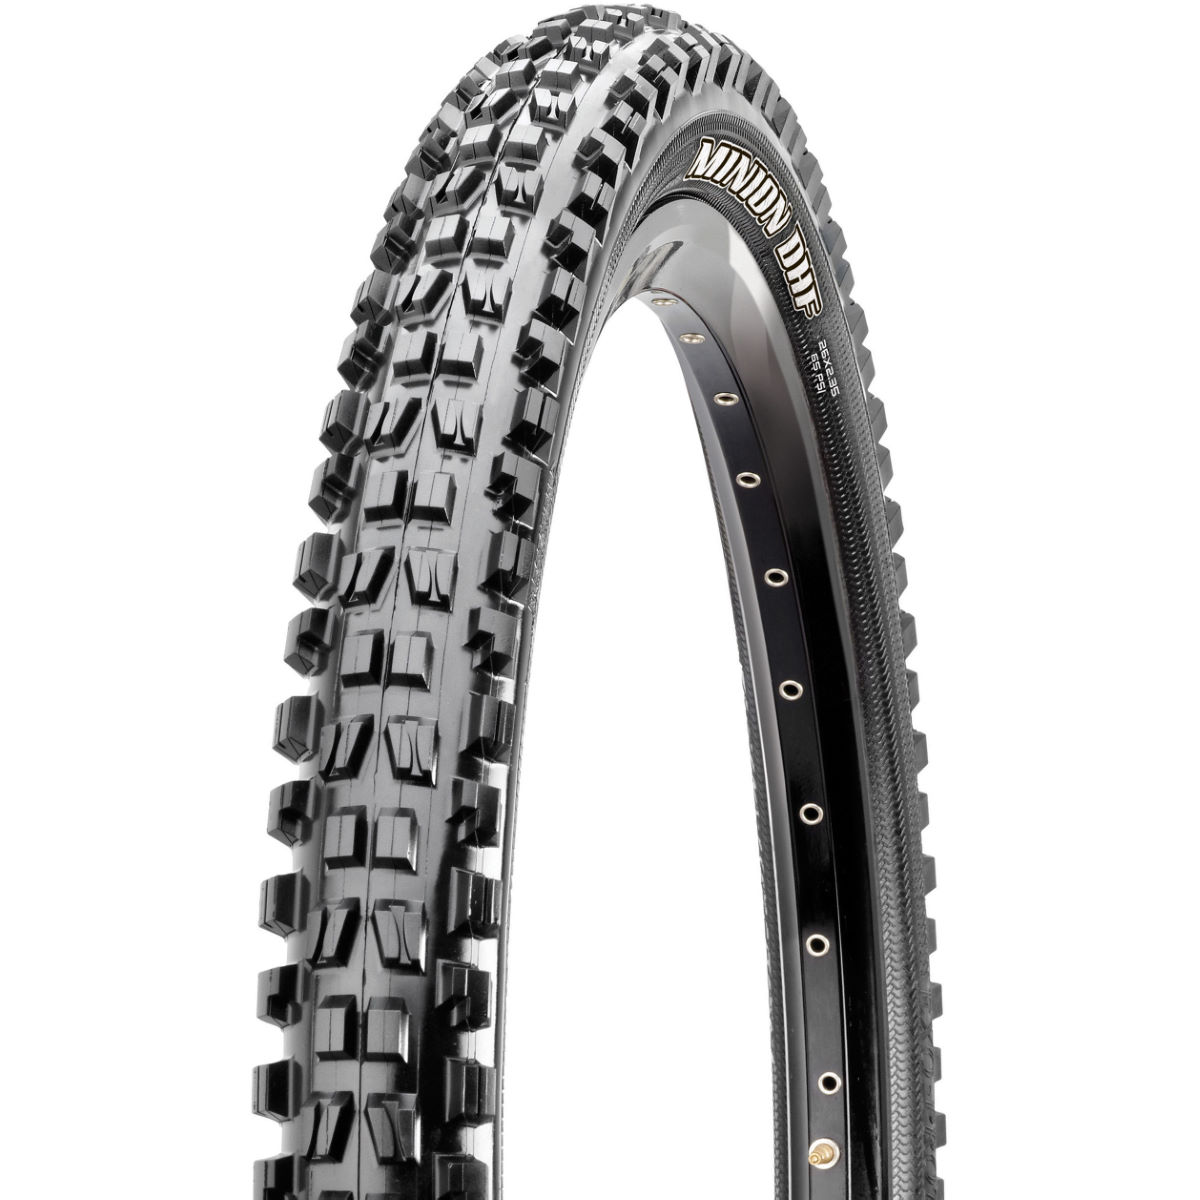 "Maxxis Maxxis Minion DHF MTB Tyre - 3C - TR - DD:2.3"":27.5""   Tyres"